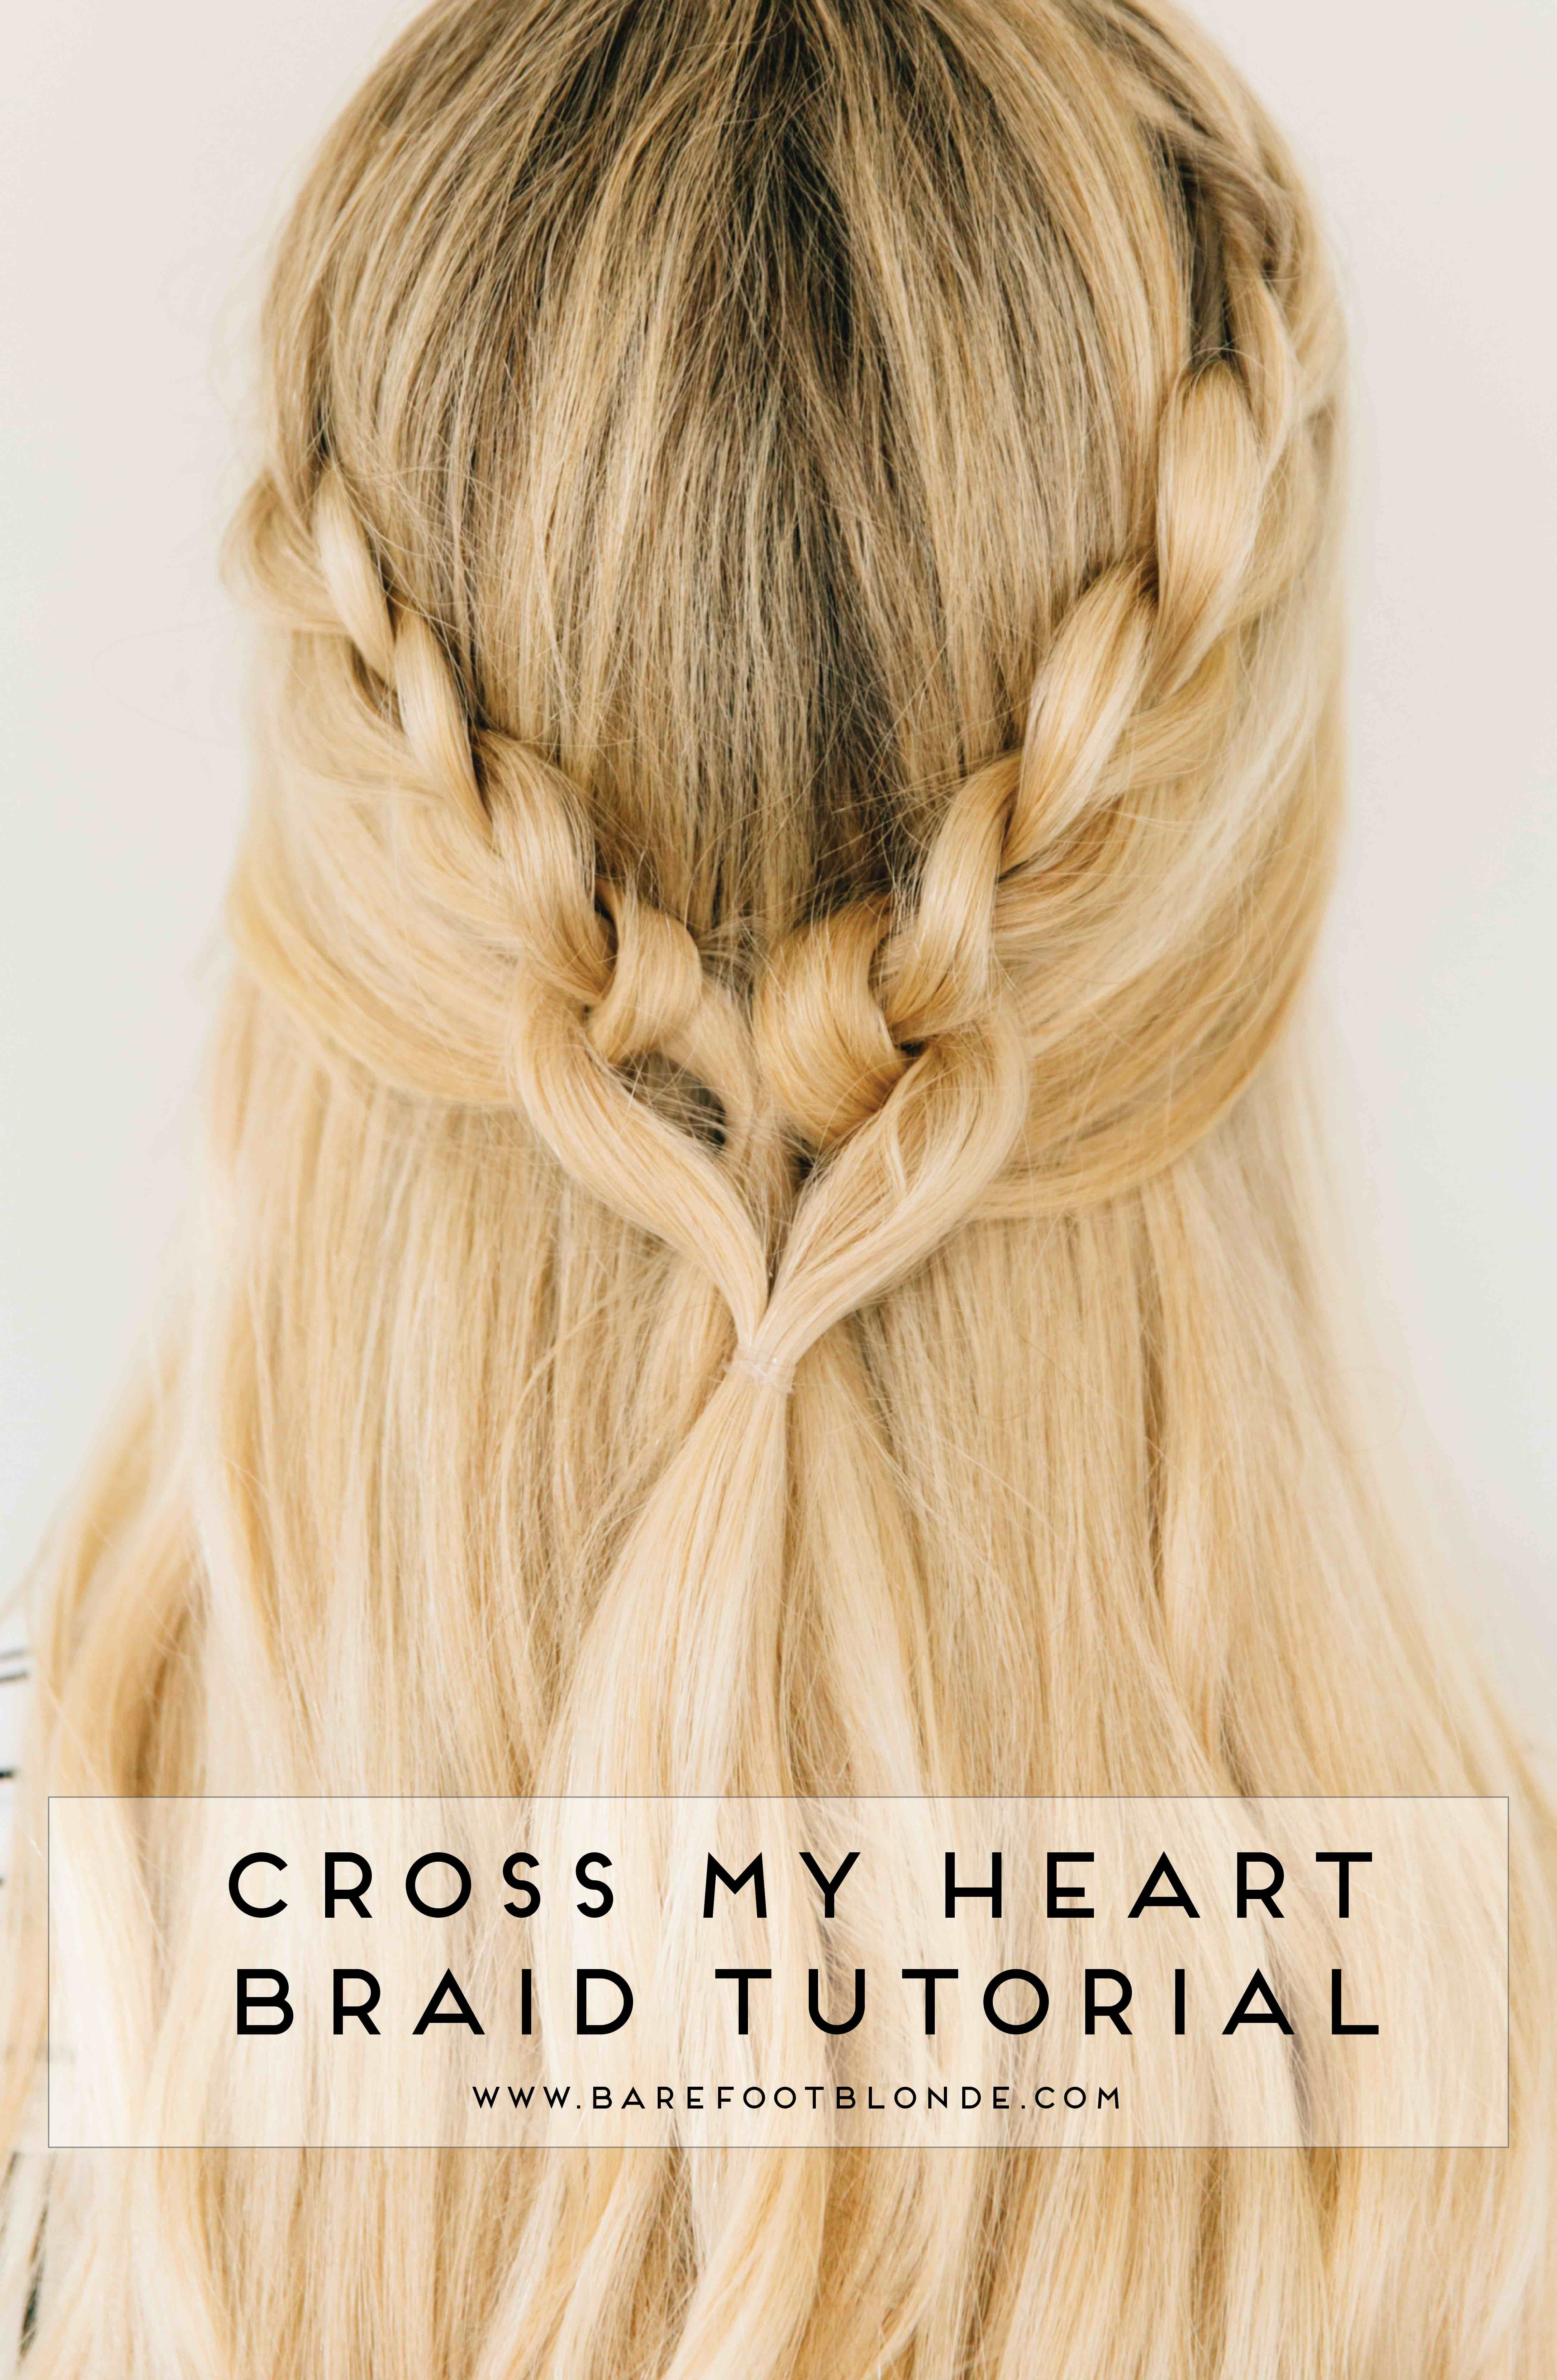 Cross my heart braid